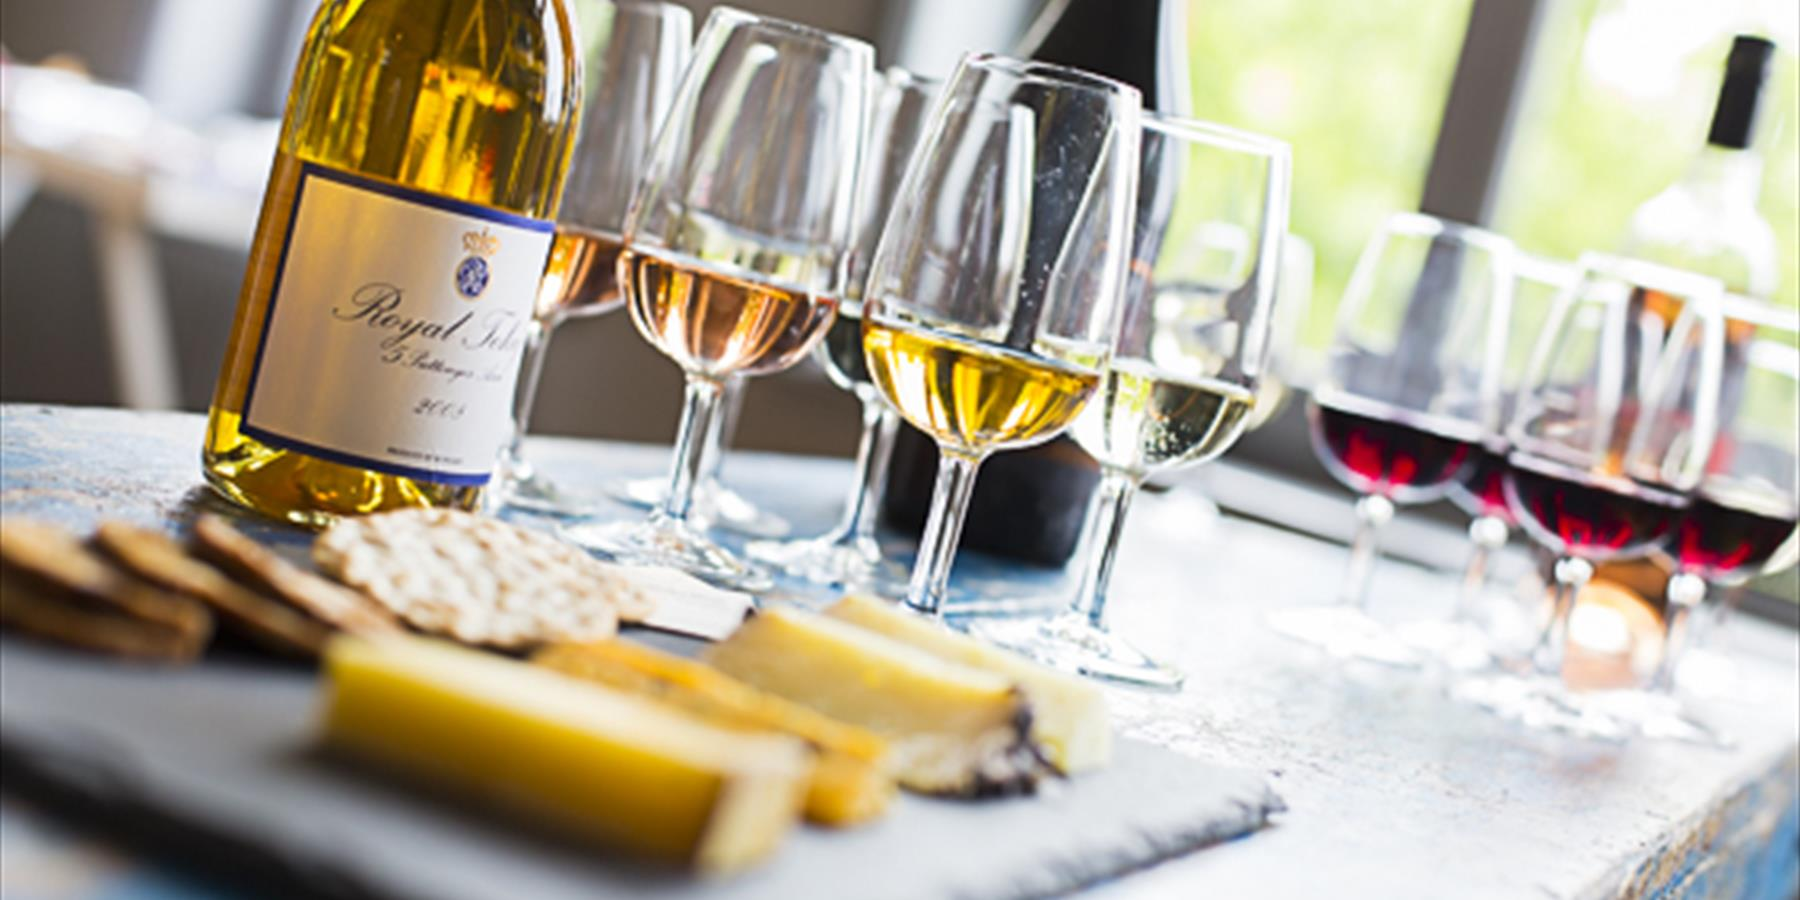 Winter Warmer - Wine & Cheese Tasting